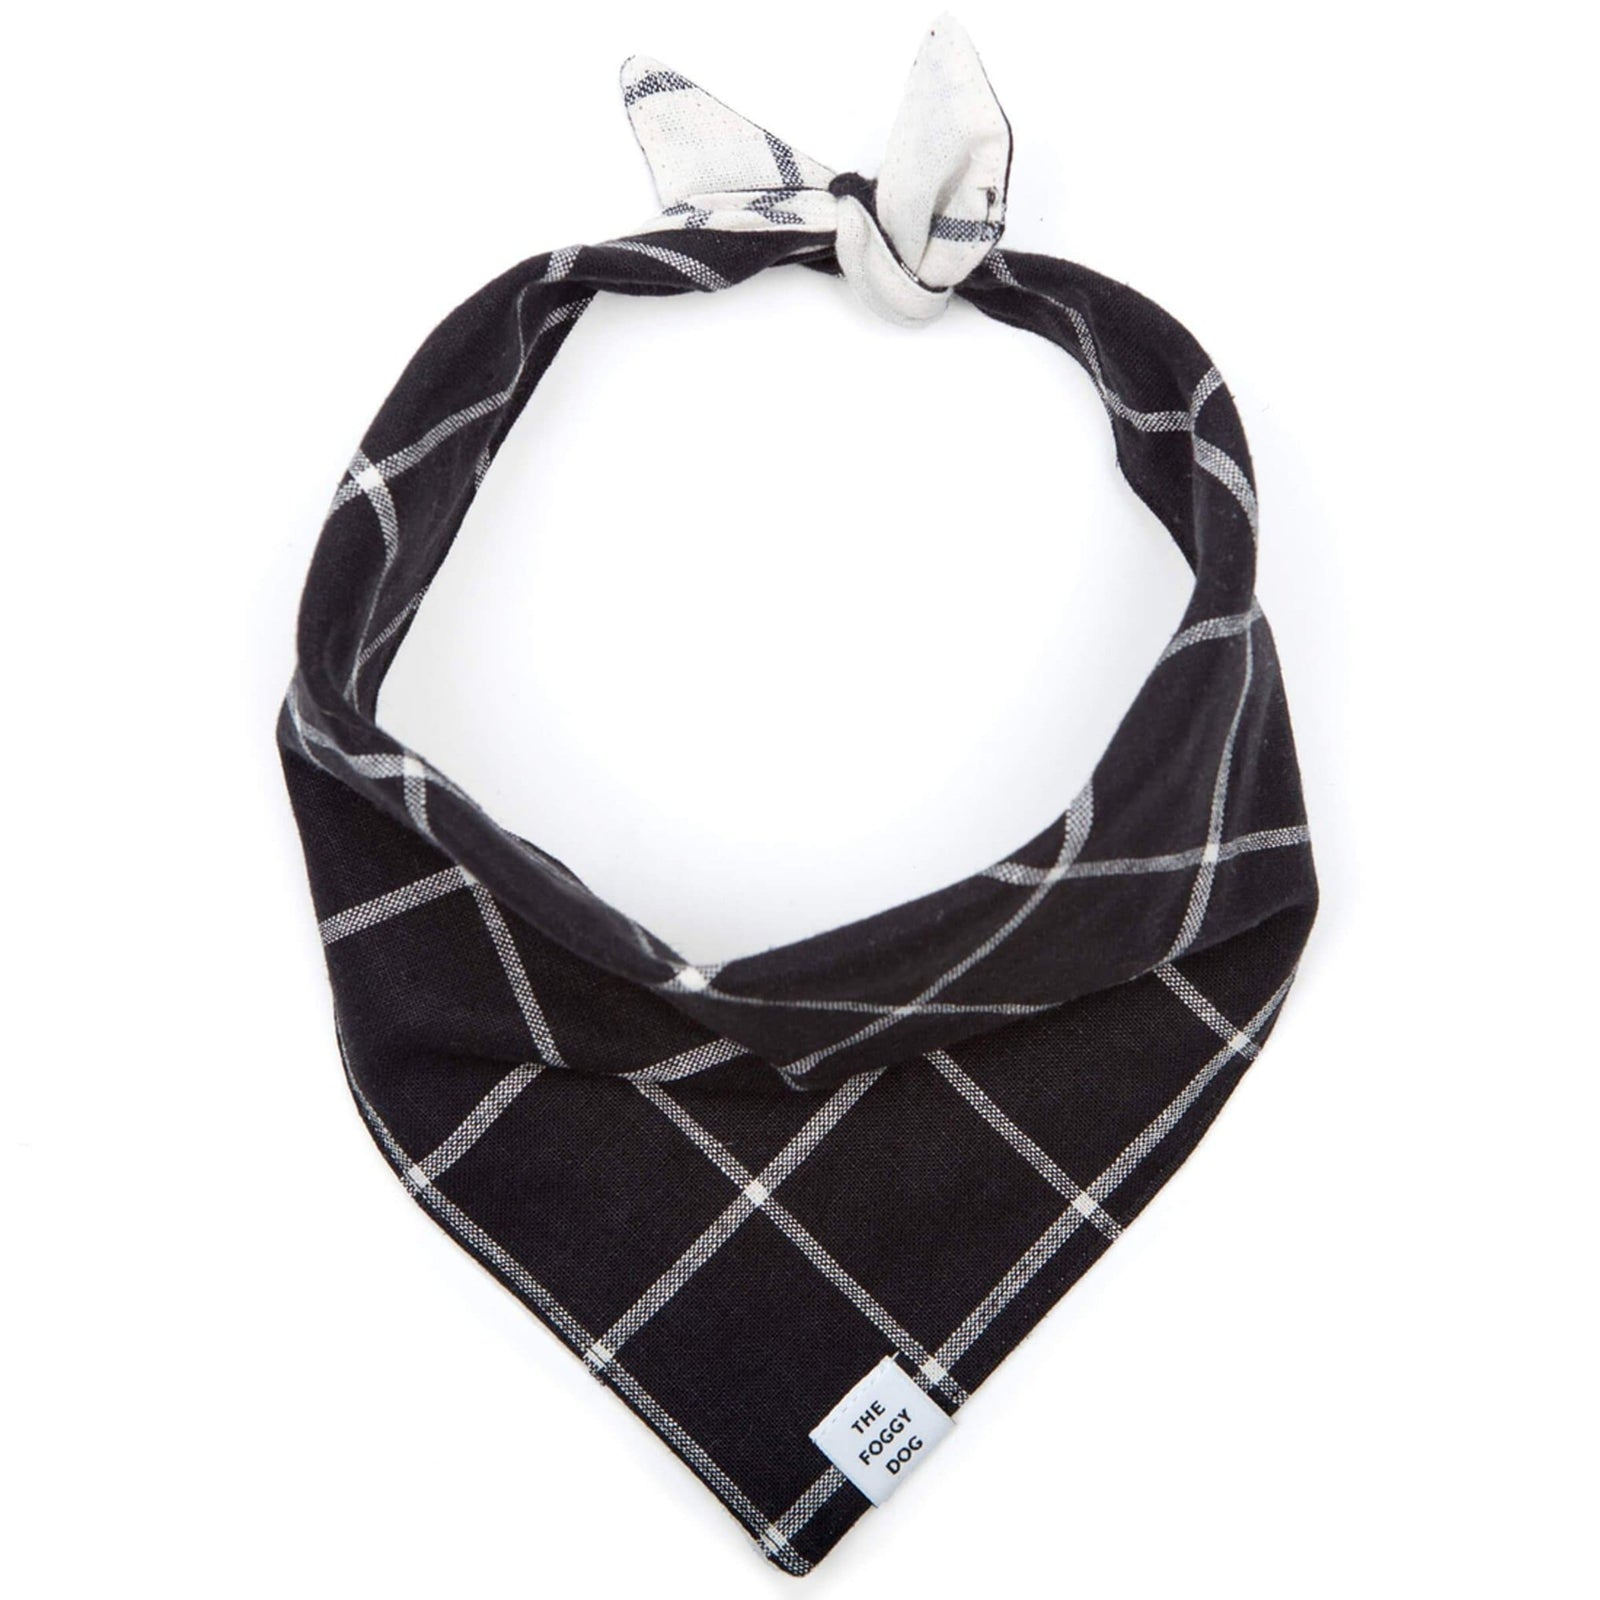 The Foggy Dog Pet Windowpane Check Black Dog Bandana (Reversible)